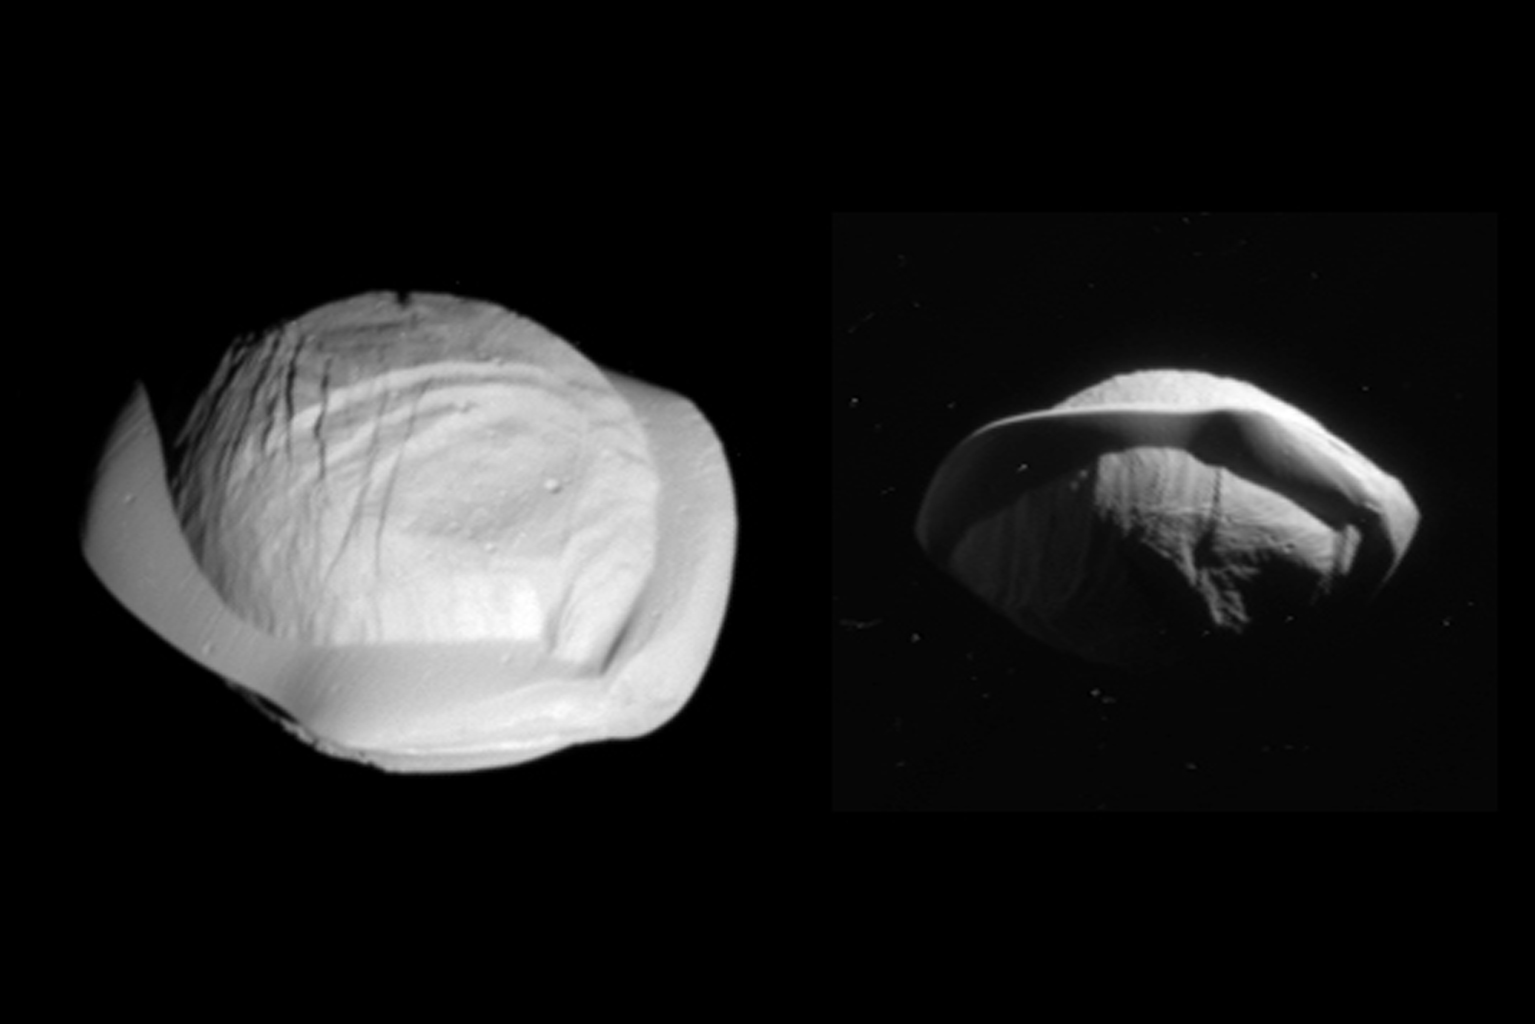 These two images from NASA's Cassini spacecraft show how the spacecraft's perspective changed as it passed within 15,300 miles (24,600 kilometers) of Saturn's moon Pan on March 7, 2017, Cassini's closest encounter.